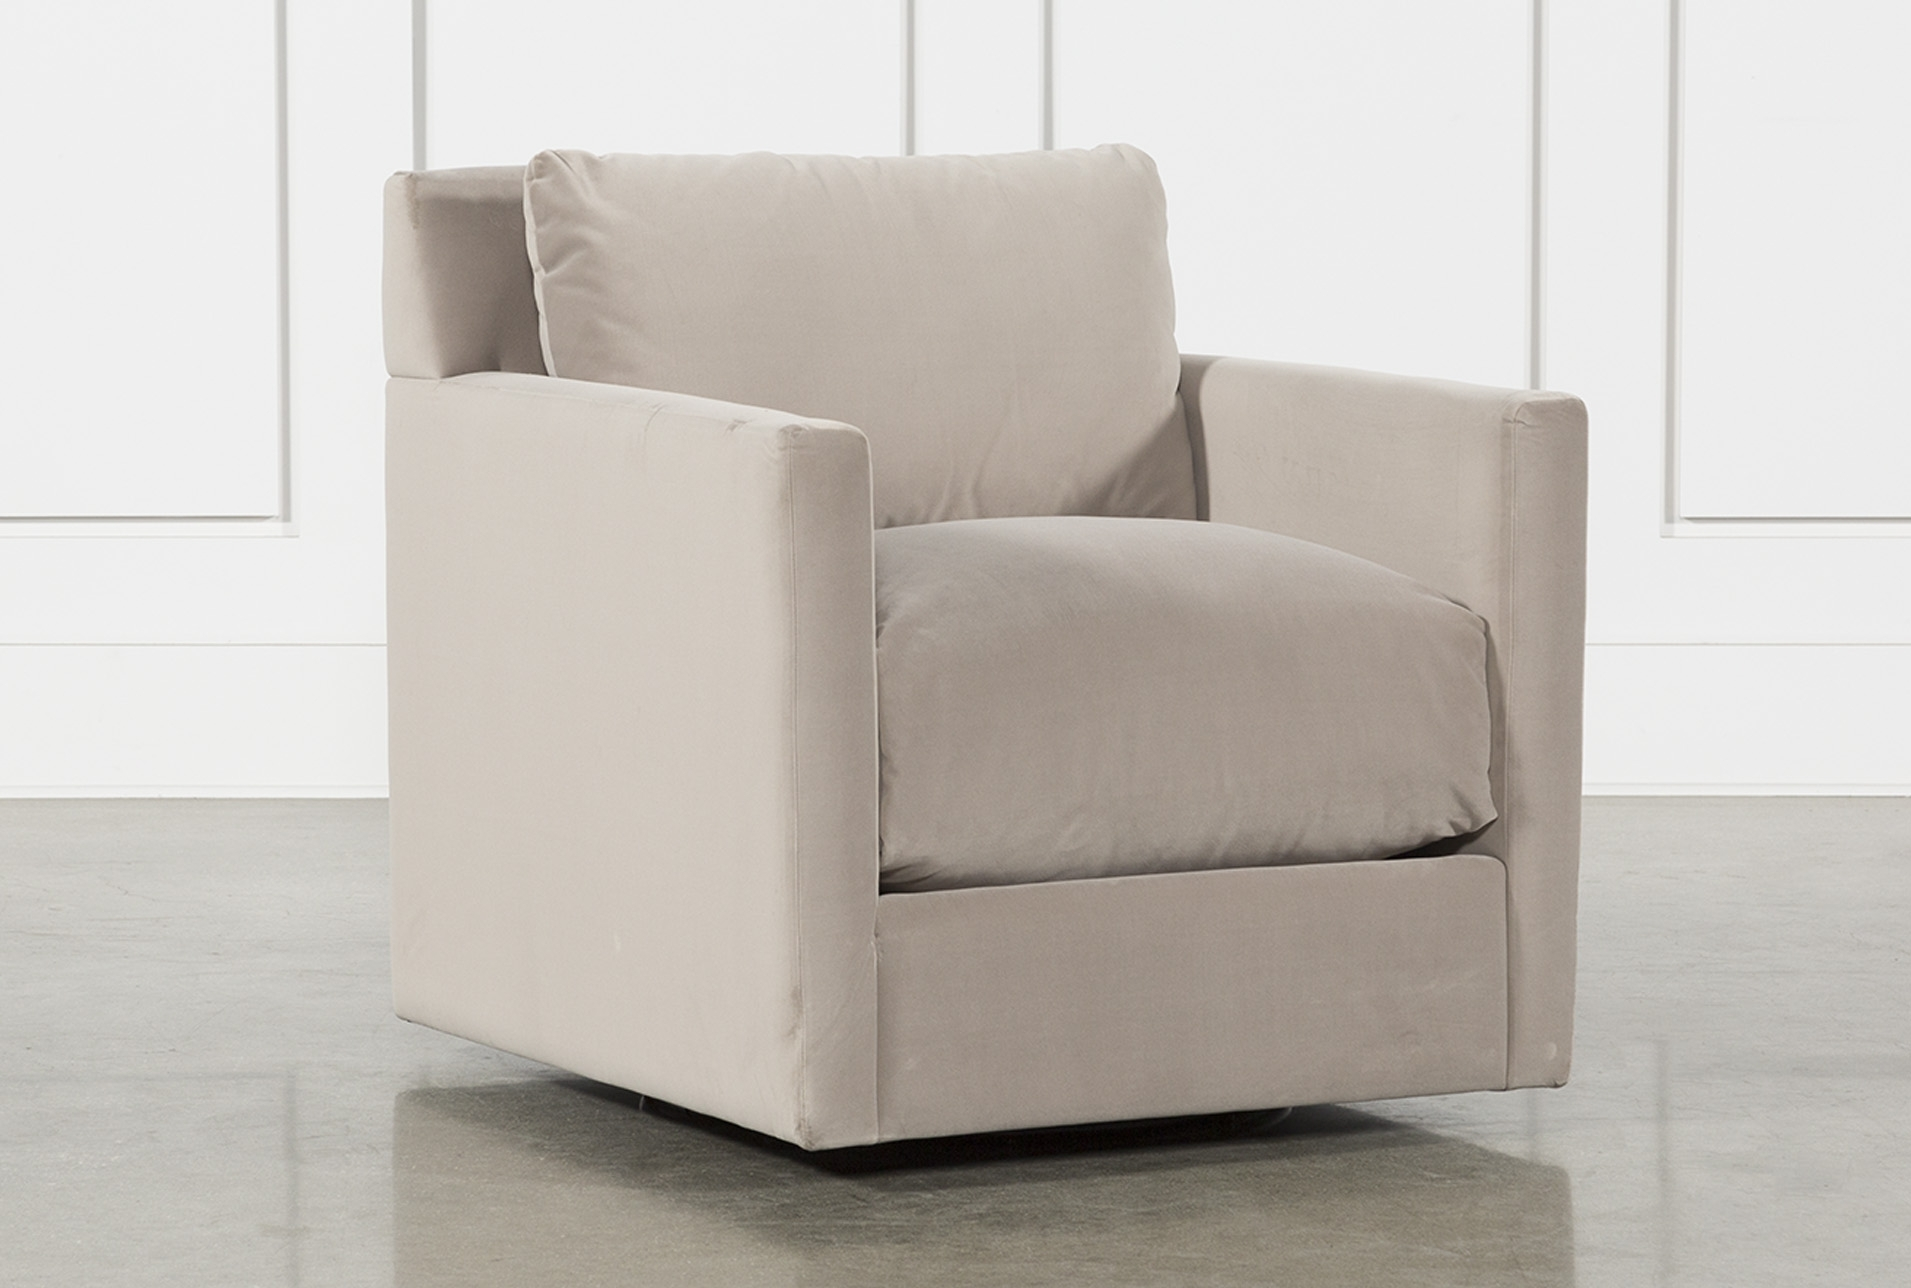 List Of Pinterest Nate Berkus And Images & Nate Berkus And Pictures Throughout Soane 3 Piece Sectionals By Nate Berkus And Jeremiah Brent (Image 3 of 25)